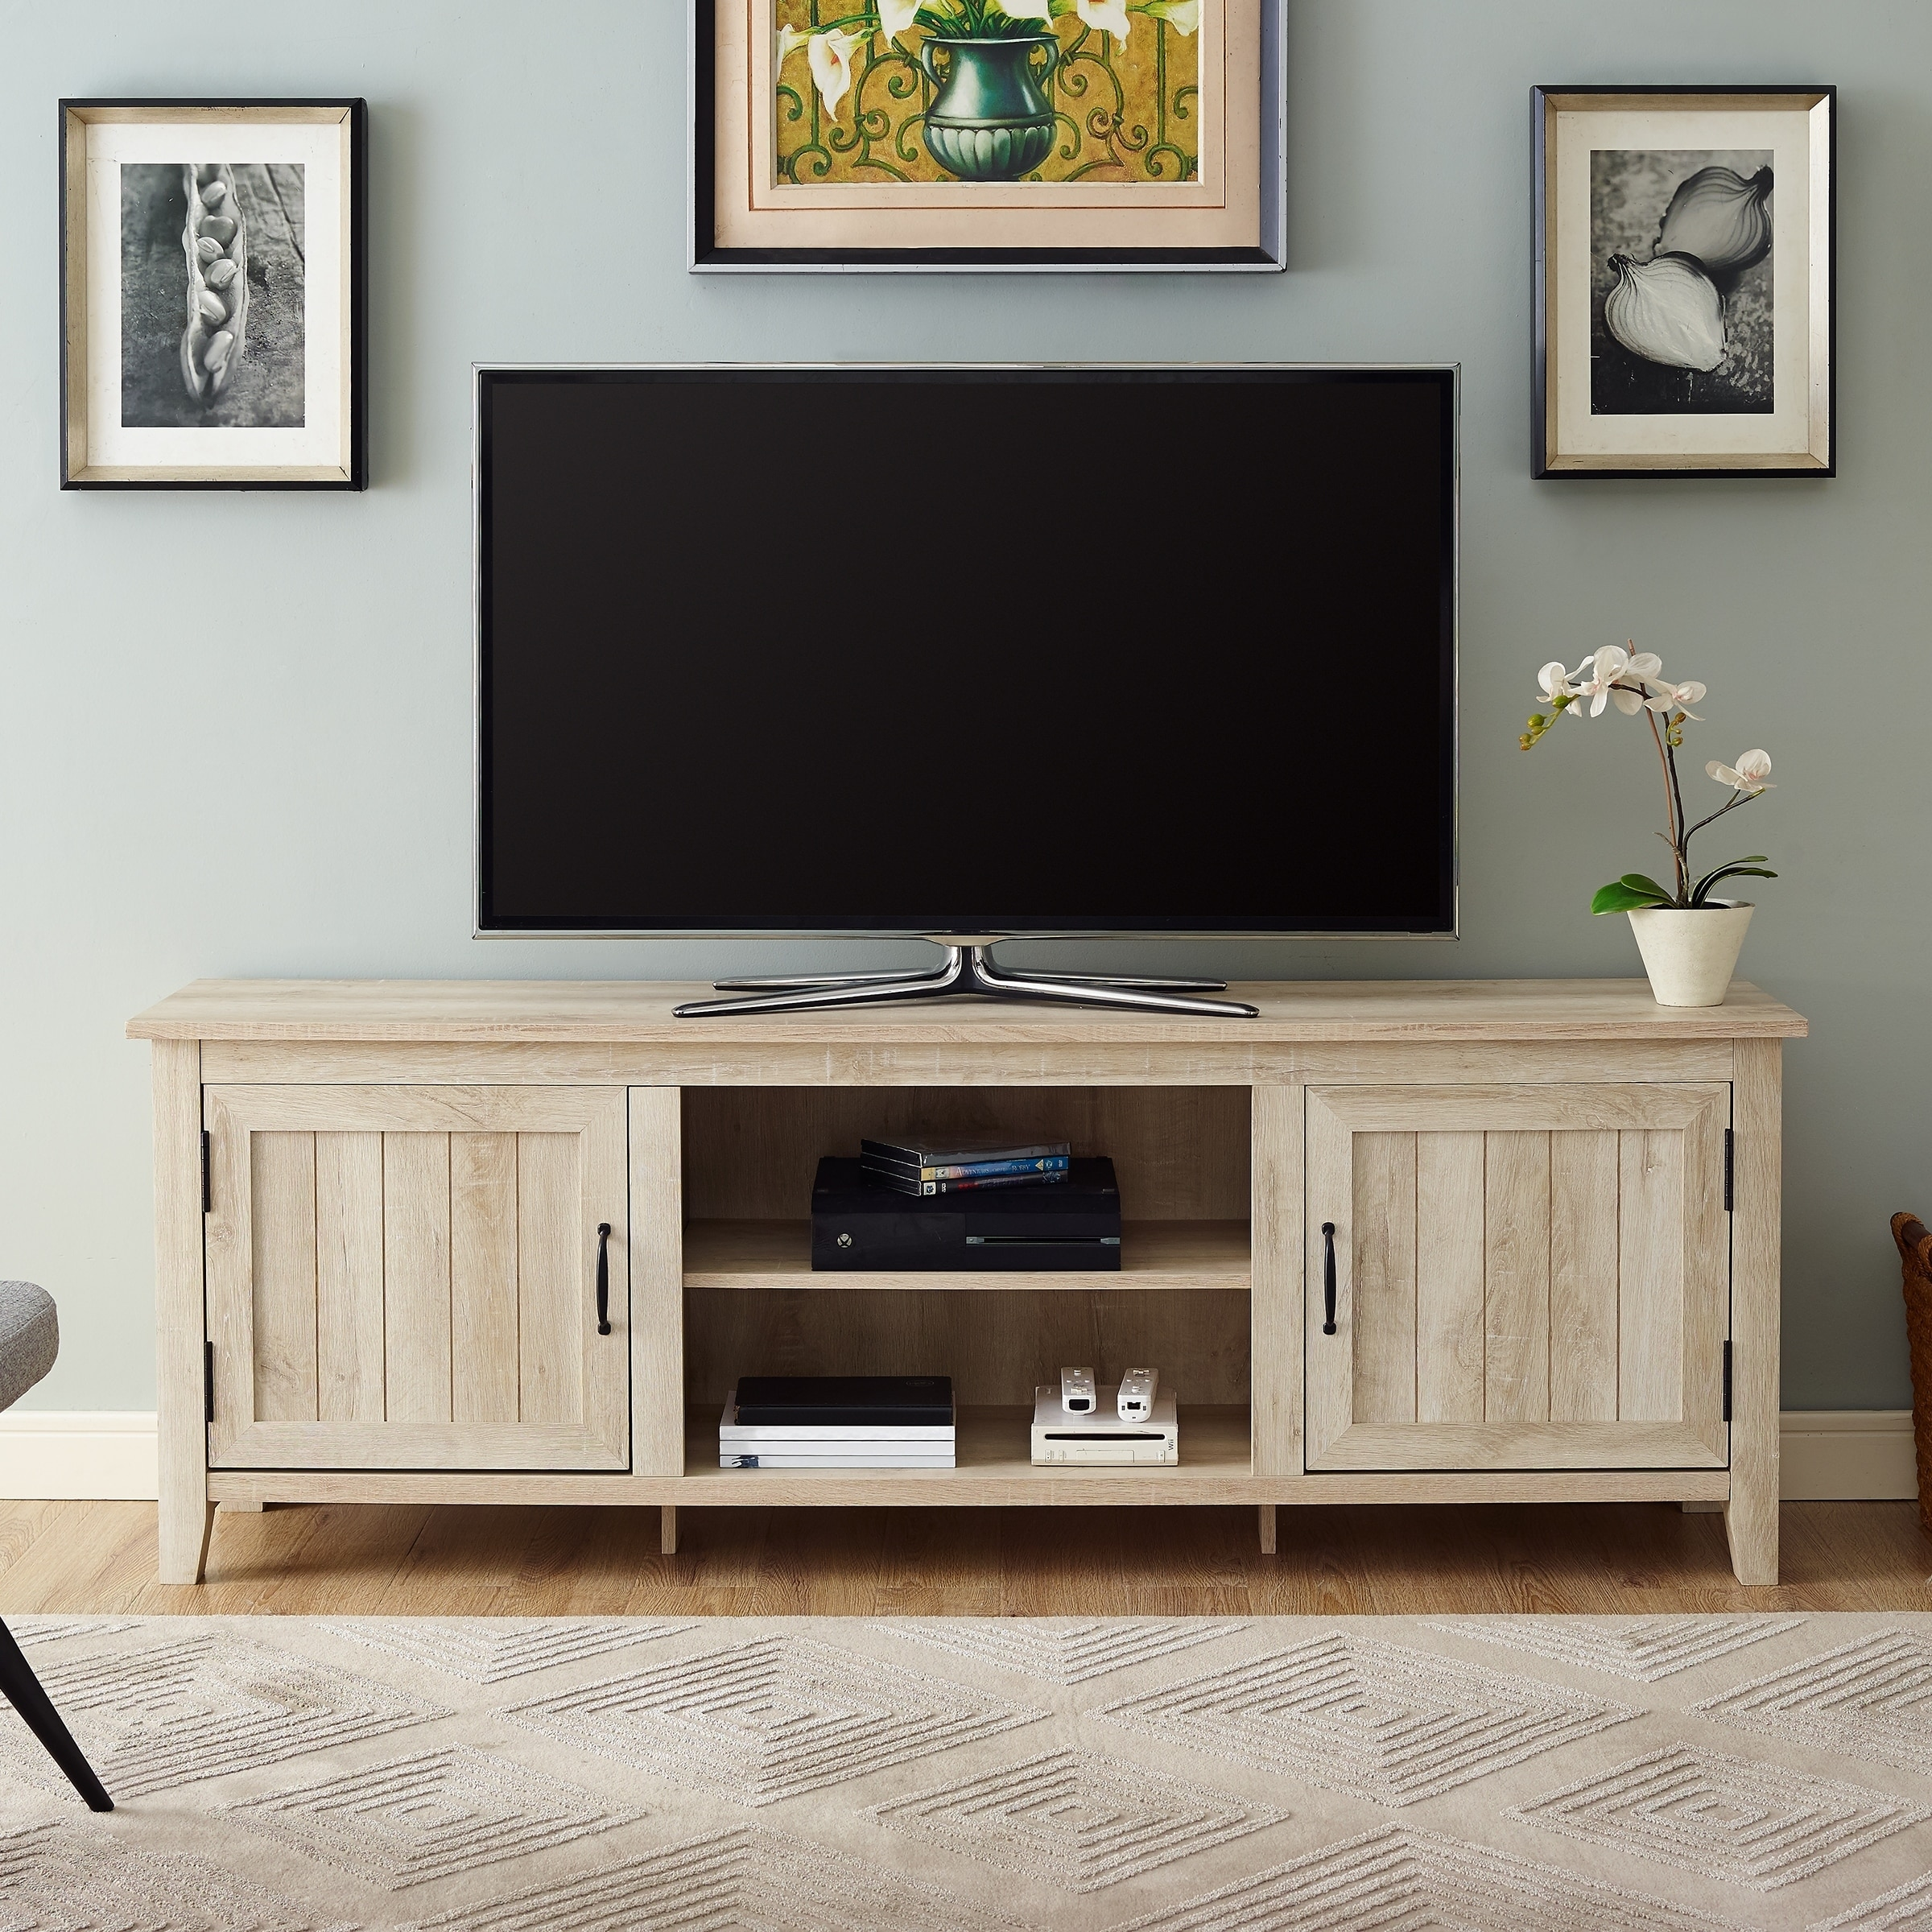 buy tv stands entertainment centers online at overstockcom our best living room furniture deals - Entertainment Centers With Bookshelves